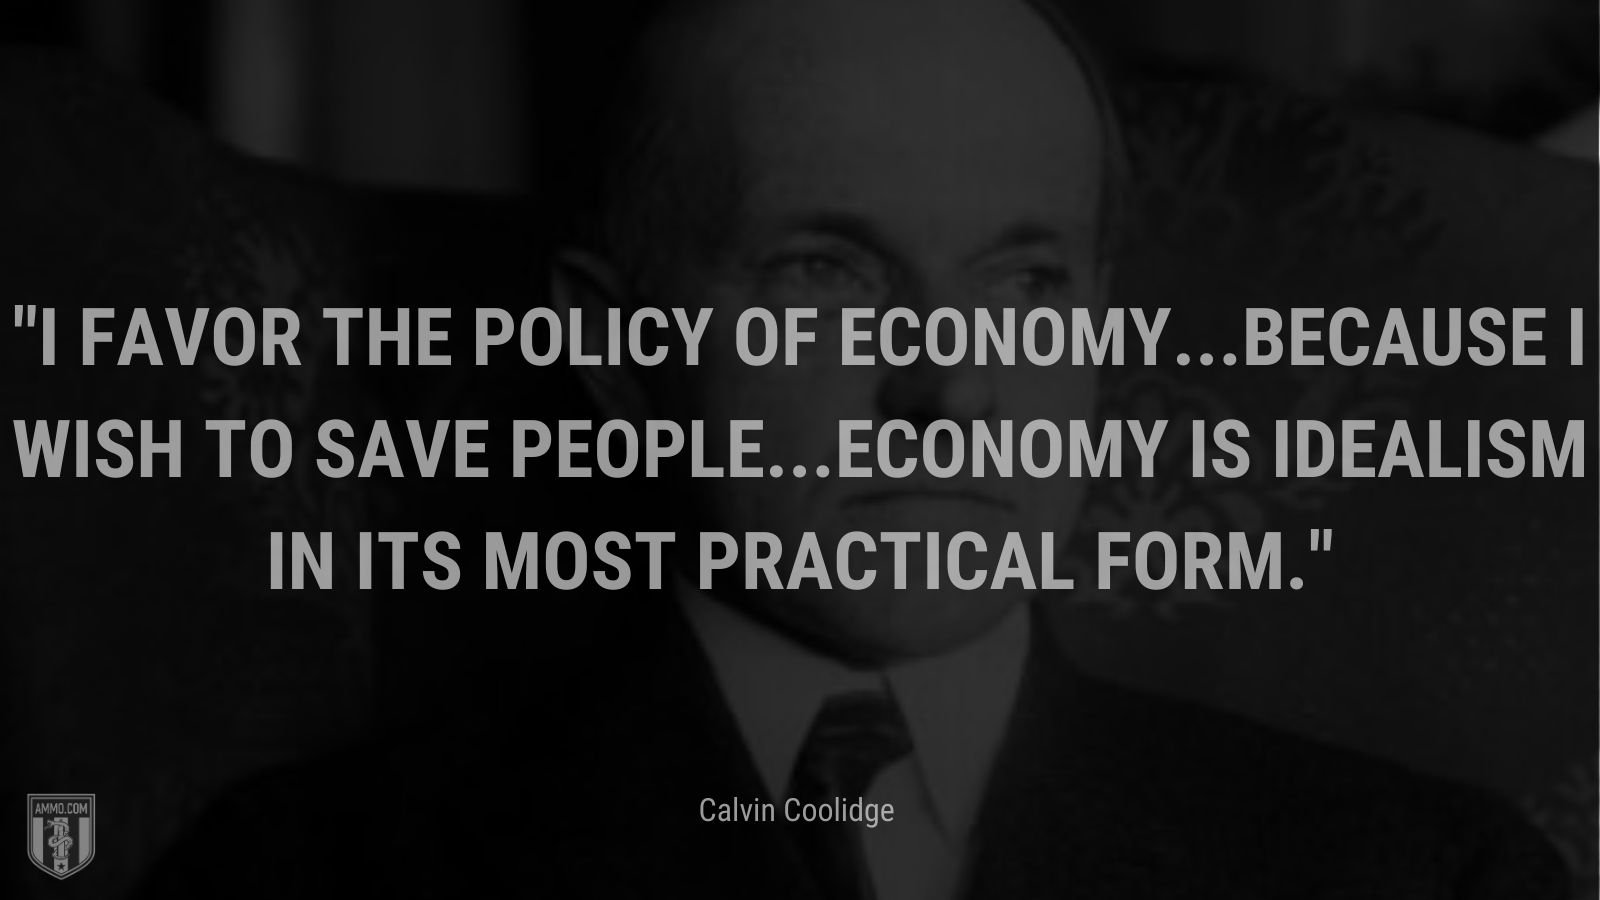 """""""I favor the policy of economy...because I wish to save people...Economy is idealism in its most practical form."""" - Calvin Coolidge"""